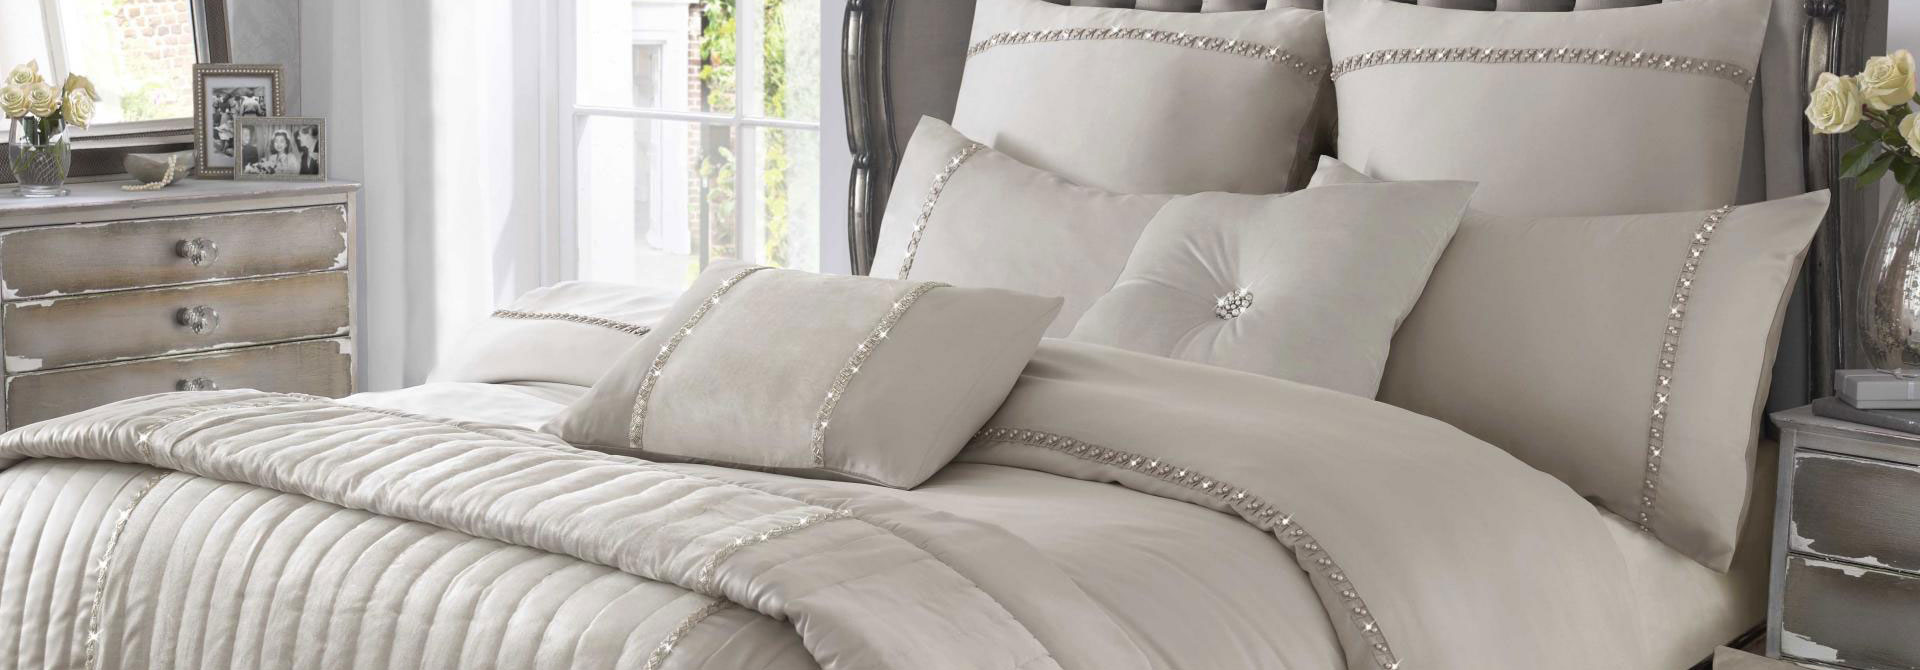 Buy Bed Linen & Accessories